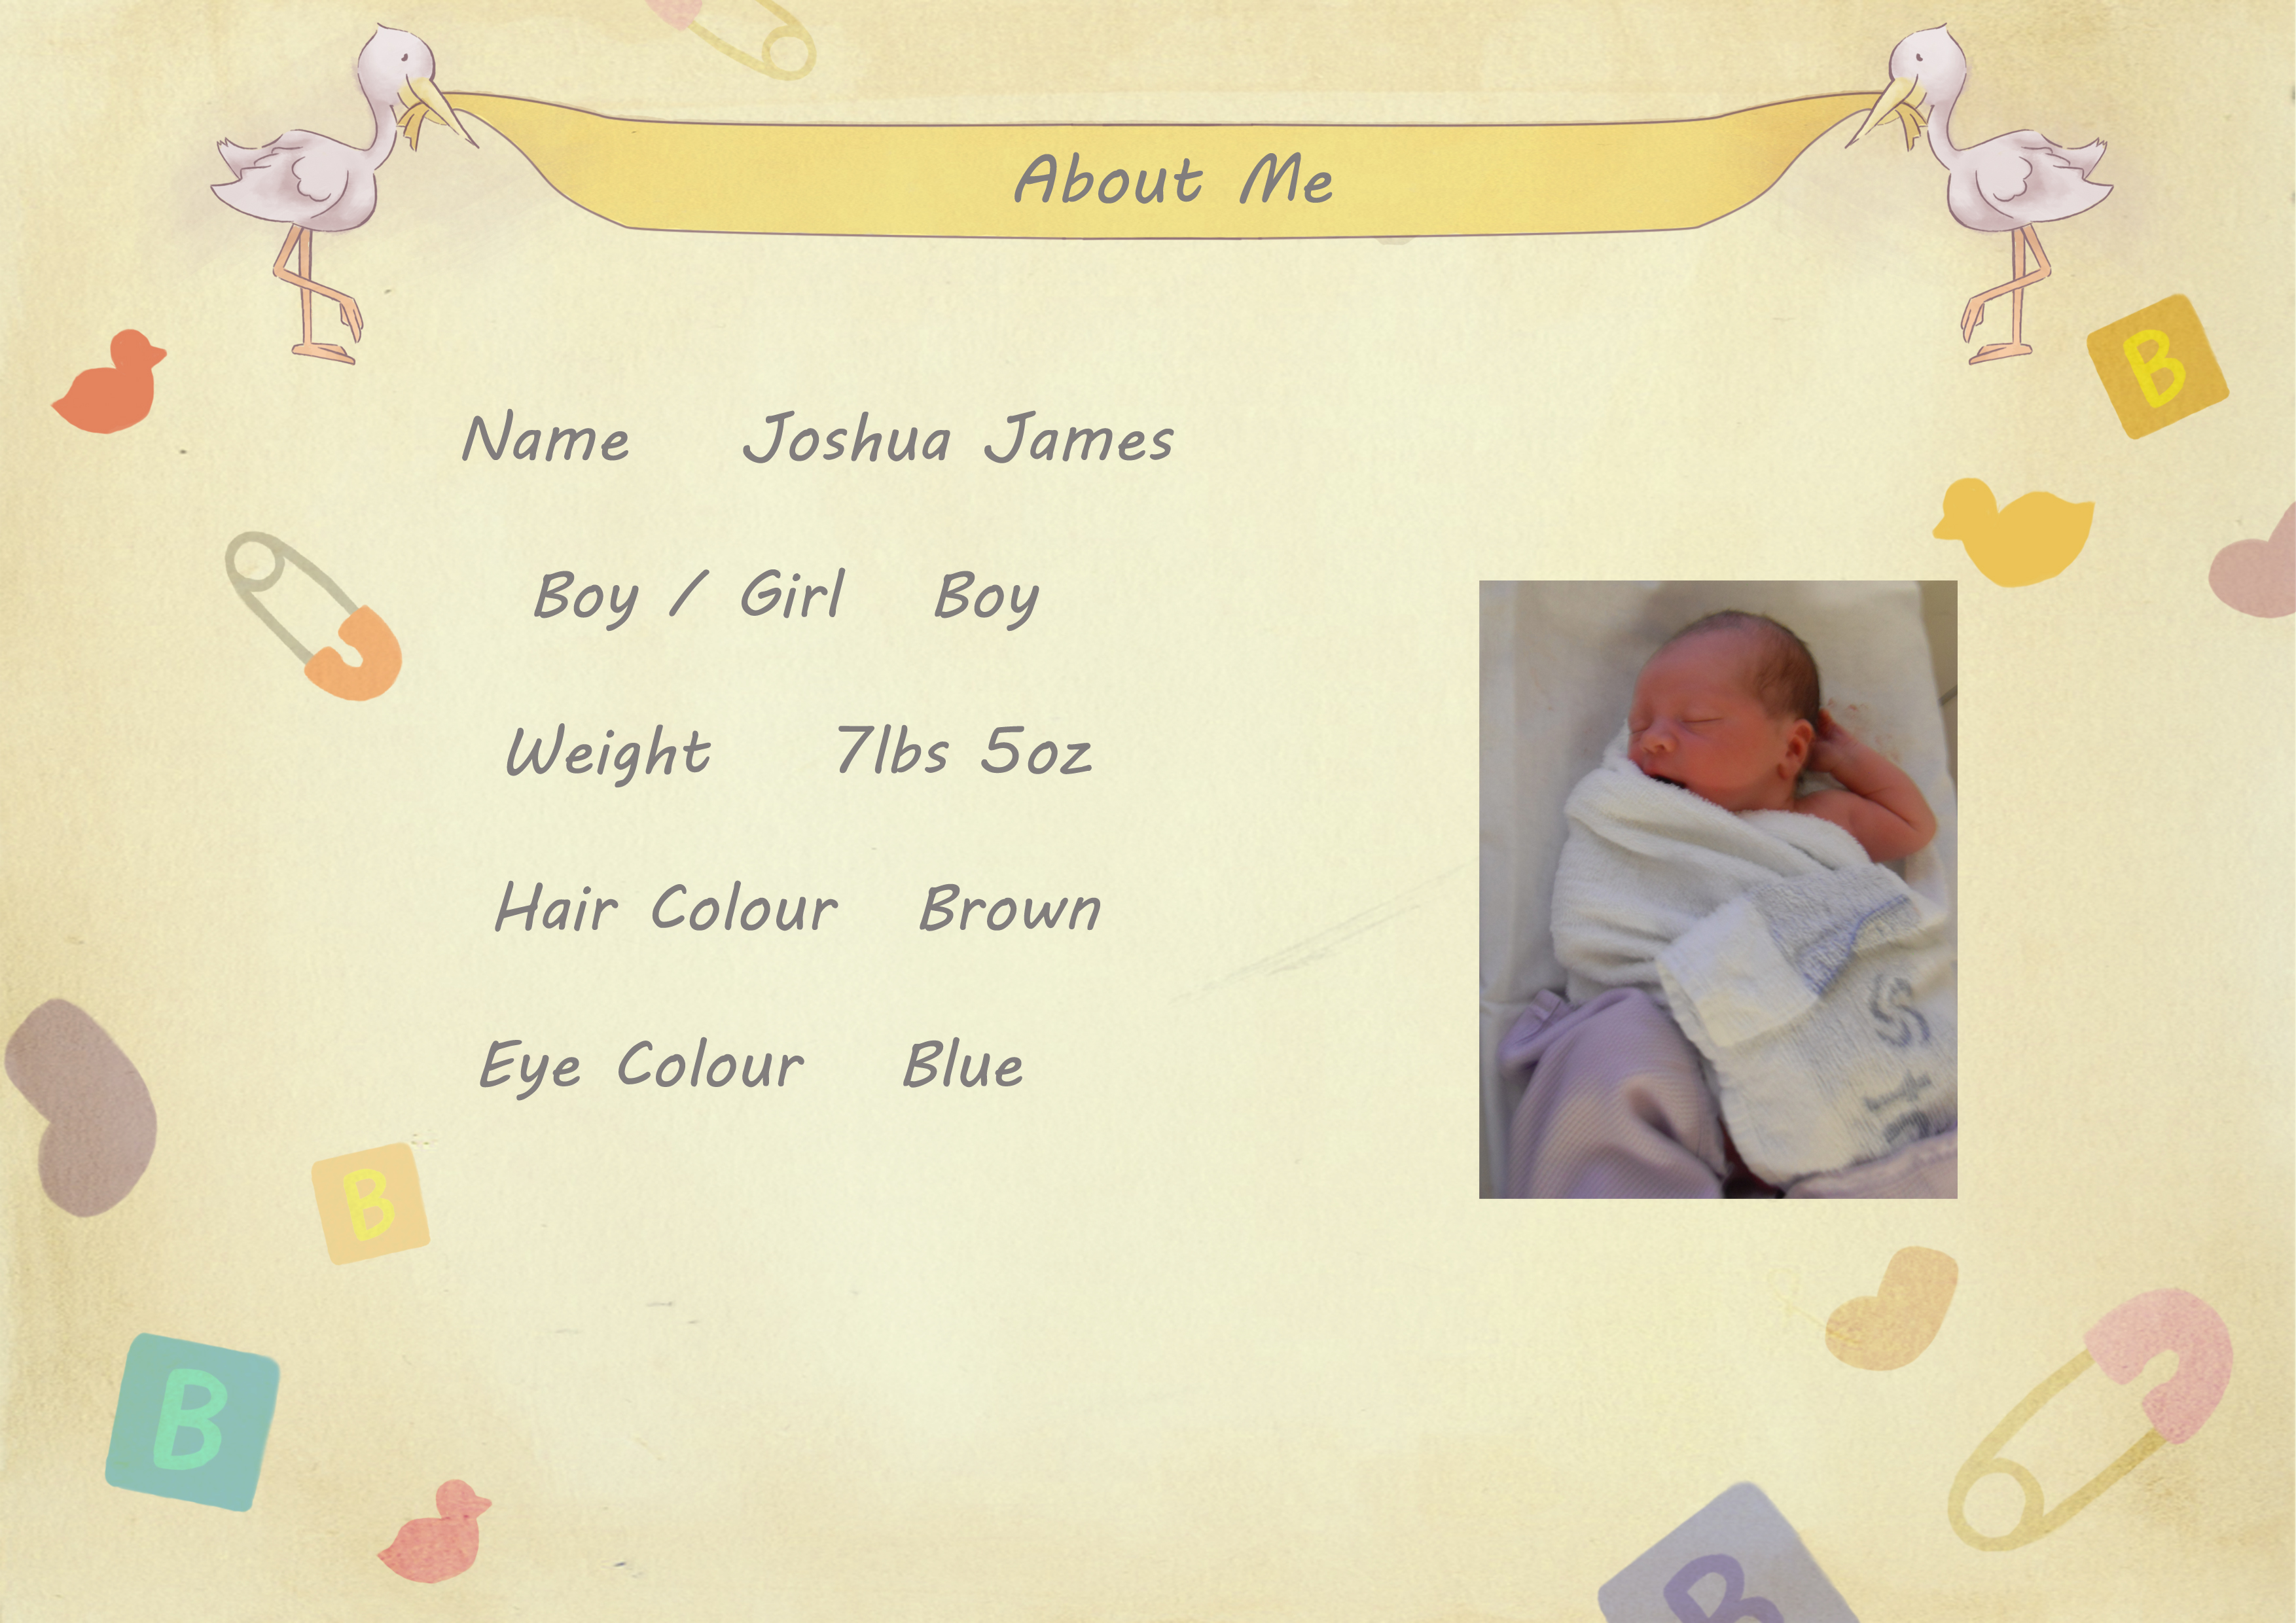 Baby Biography About me page copy